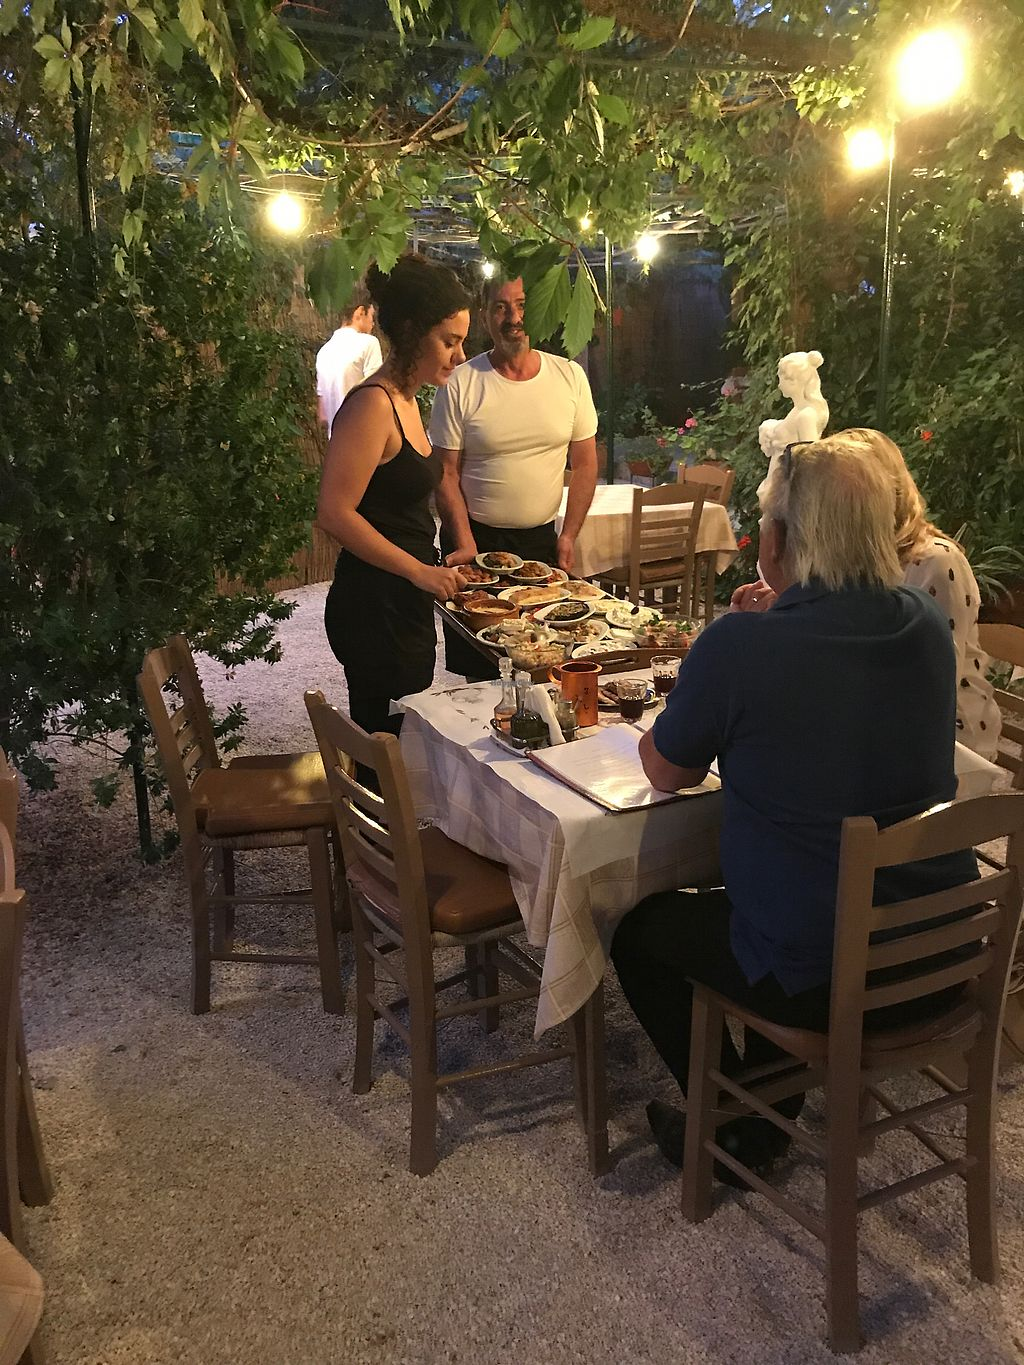 """Photo of Taverna Akrotiri  by <a href=""""/members/profile/TanjaG"""">TanjaG</a> <br/>appetizers <br/> June 25, 2017  - <a href='/contact/abuse/image/94341/273343'>Report</a>"""